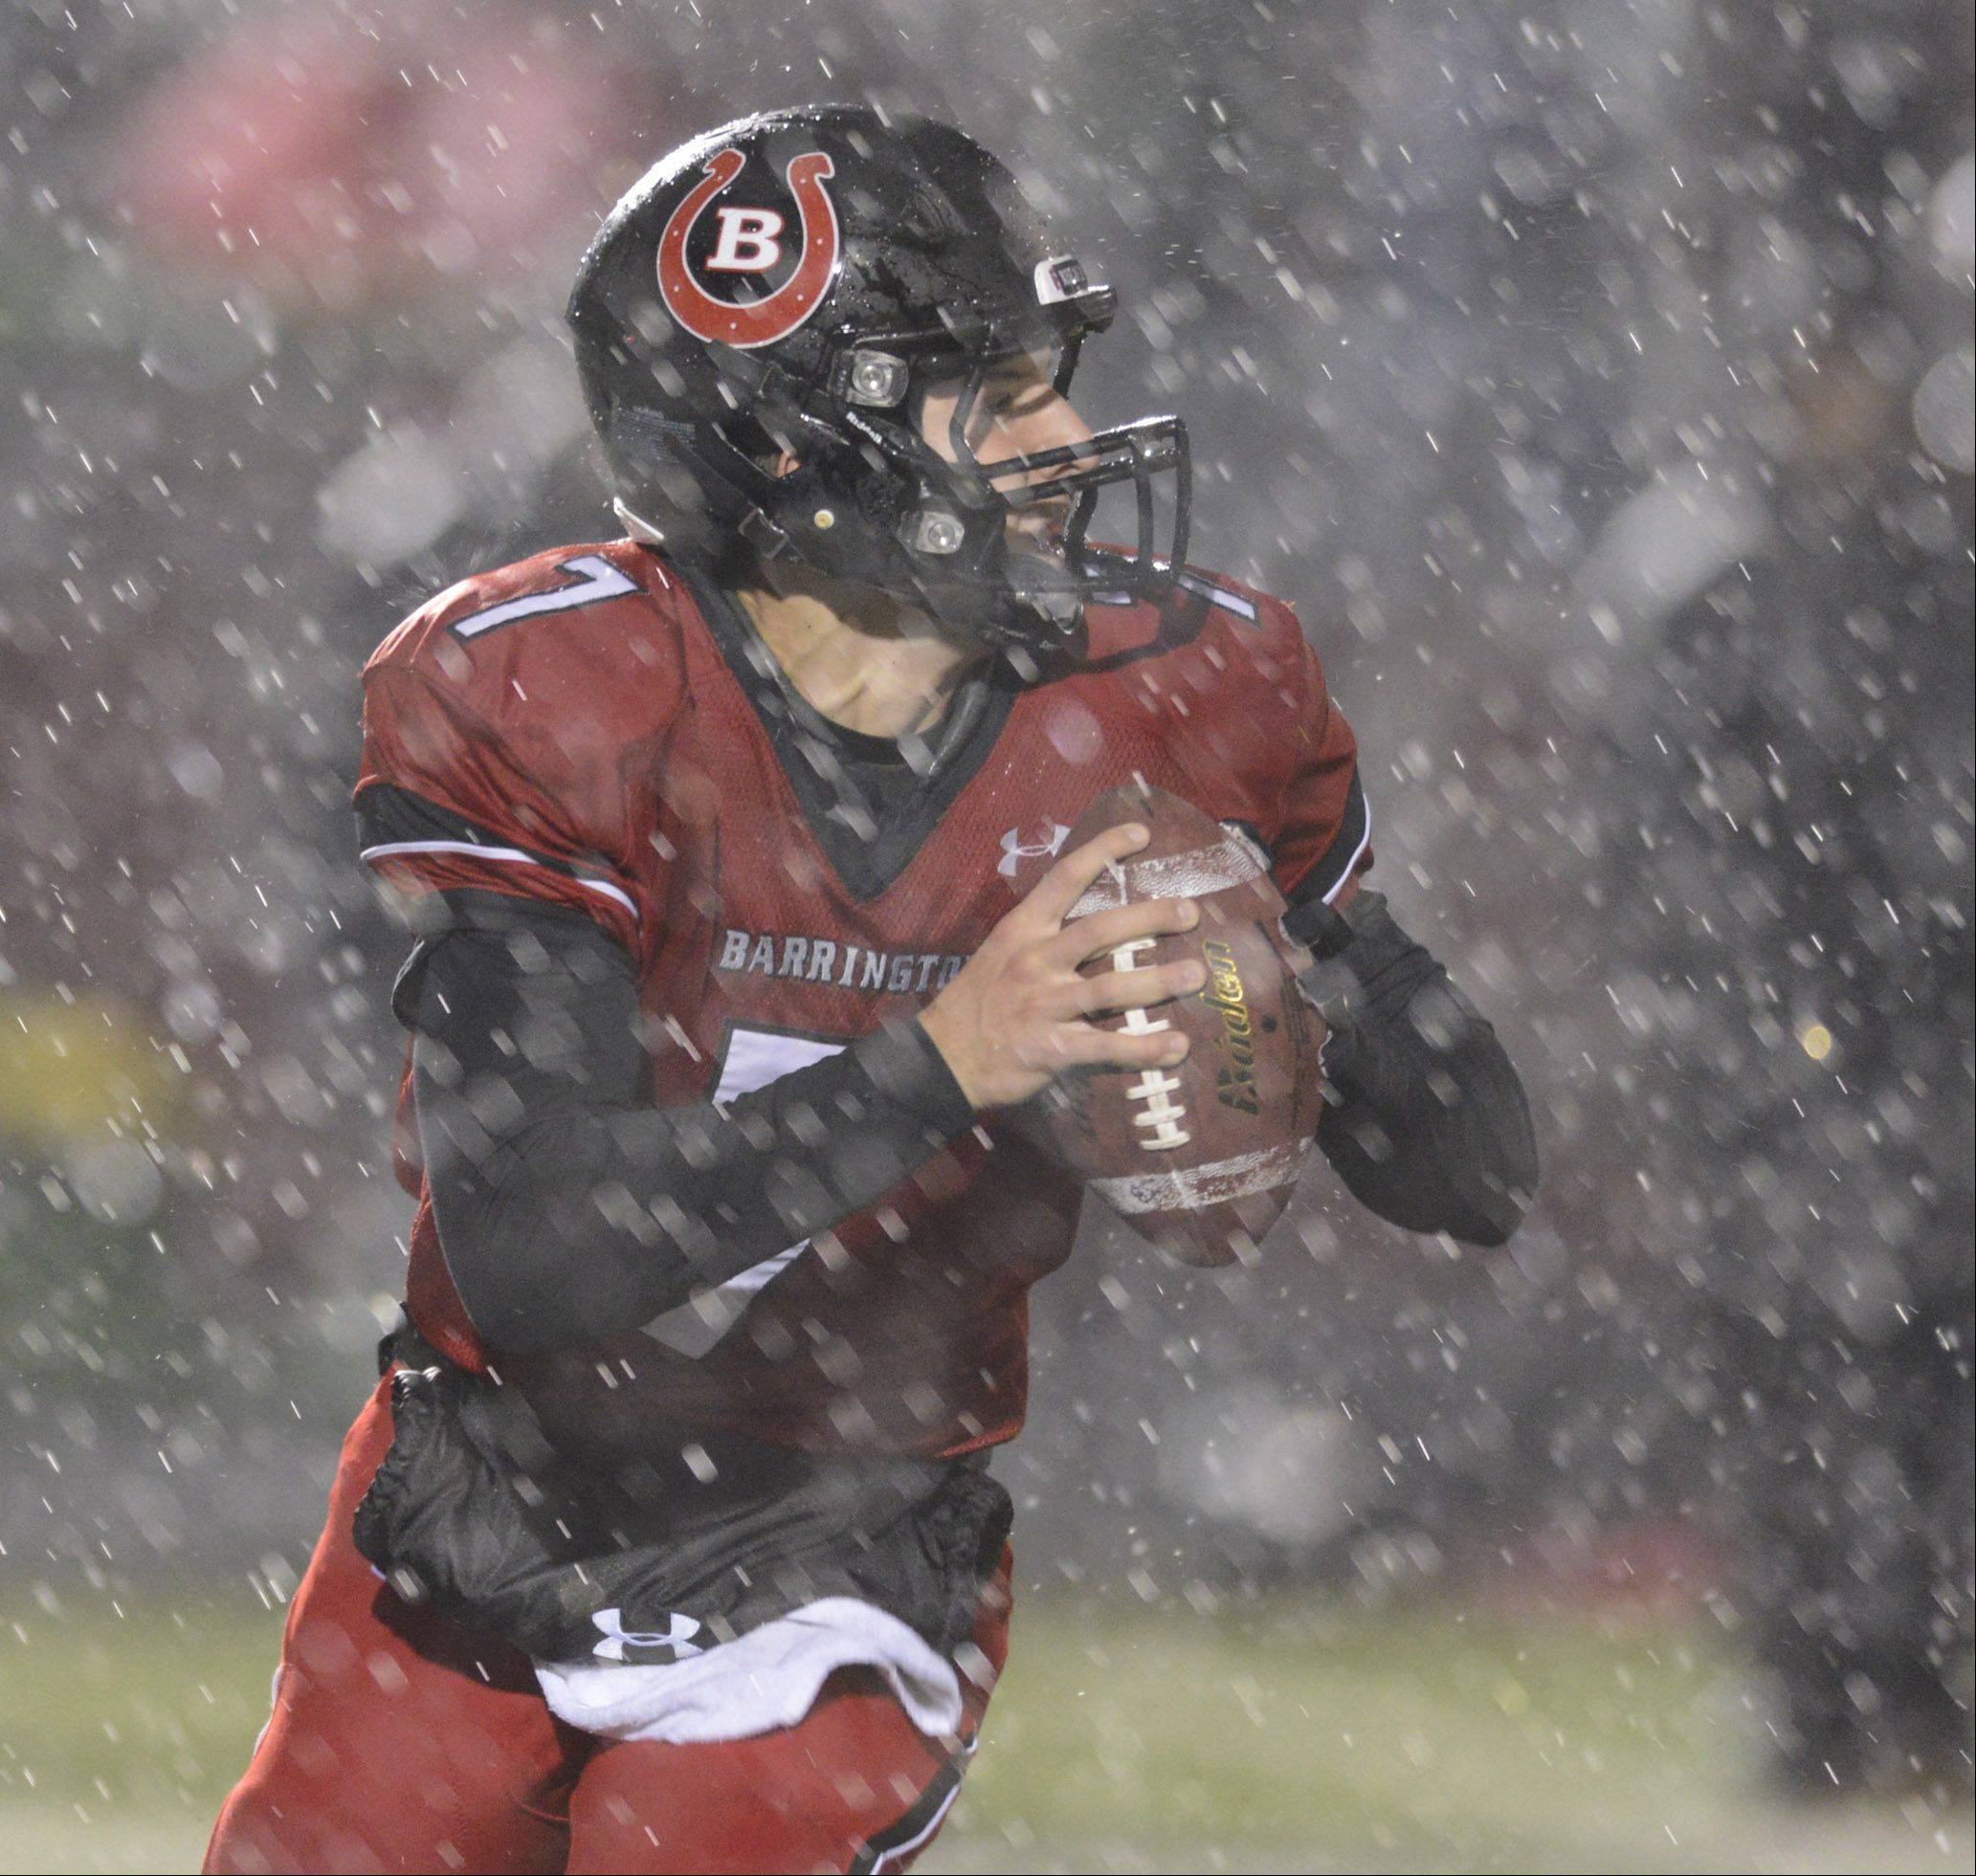 Barrington quarterback Daniel Kubiuk looks for an open teammate in pouring rain during Saturday's Class 8A playoff game against Stevenson.